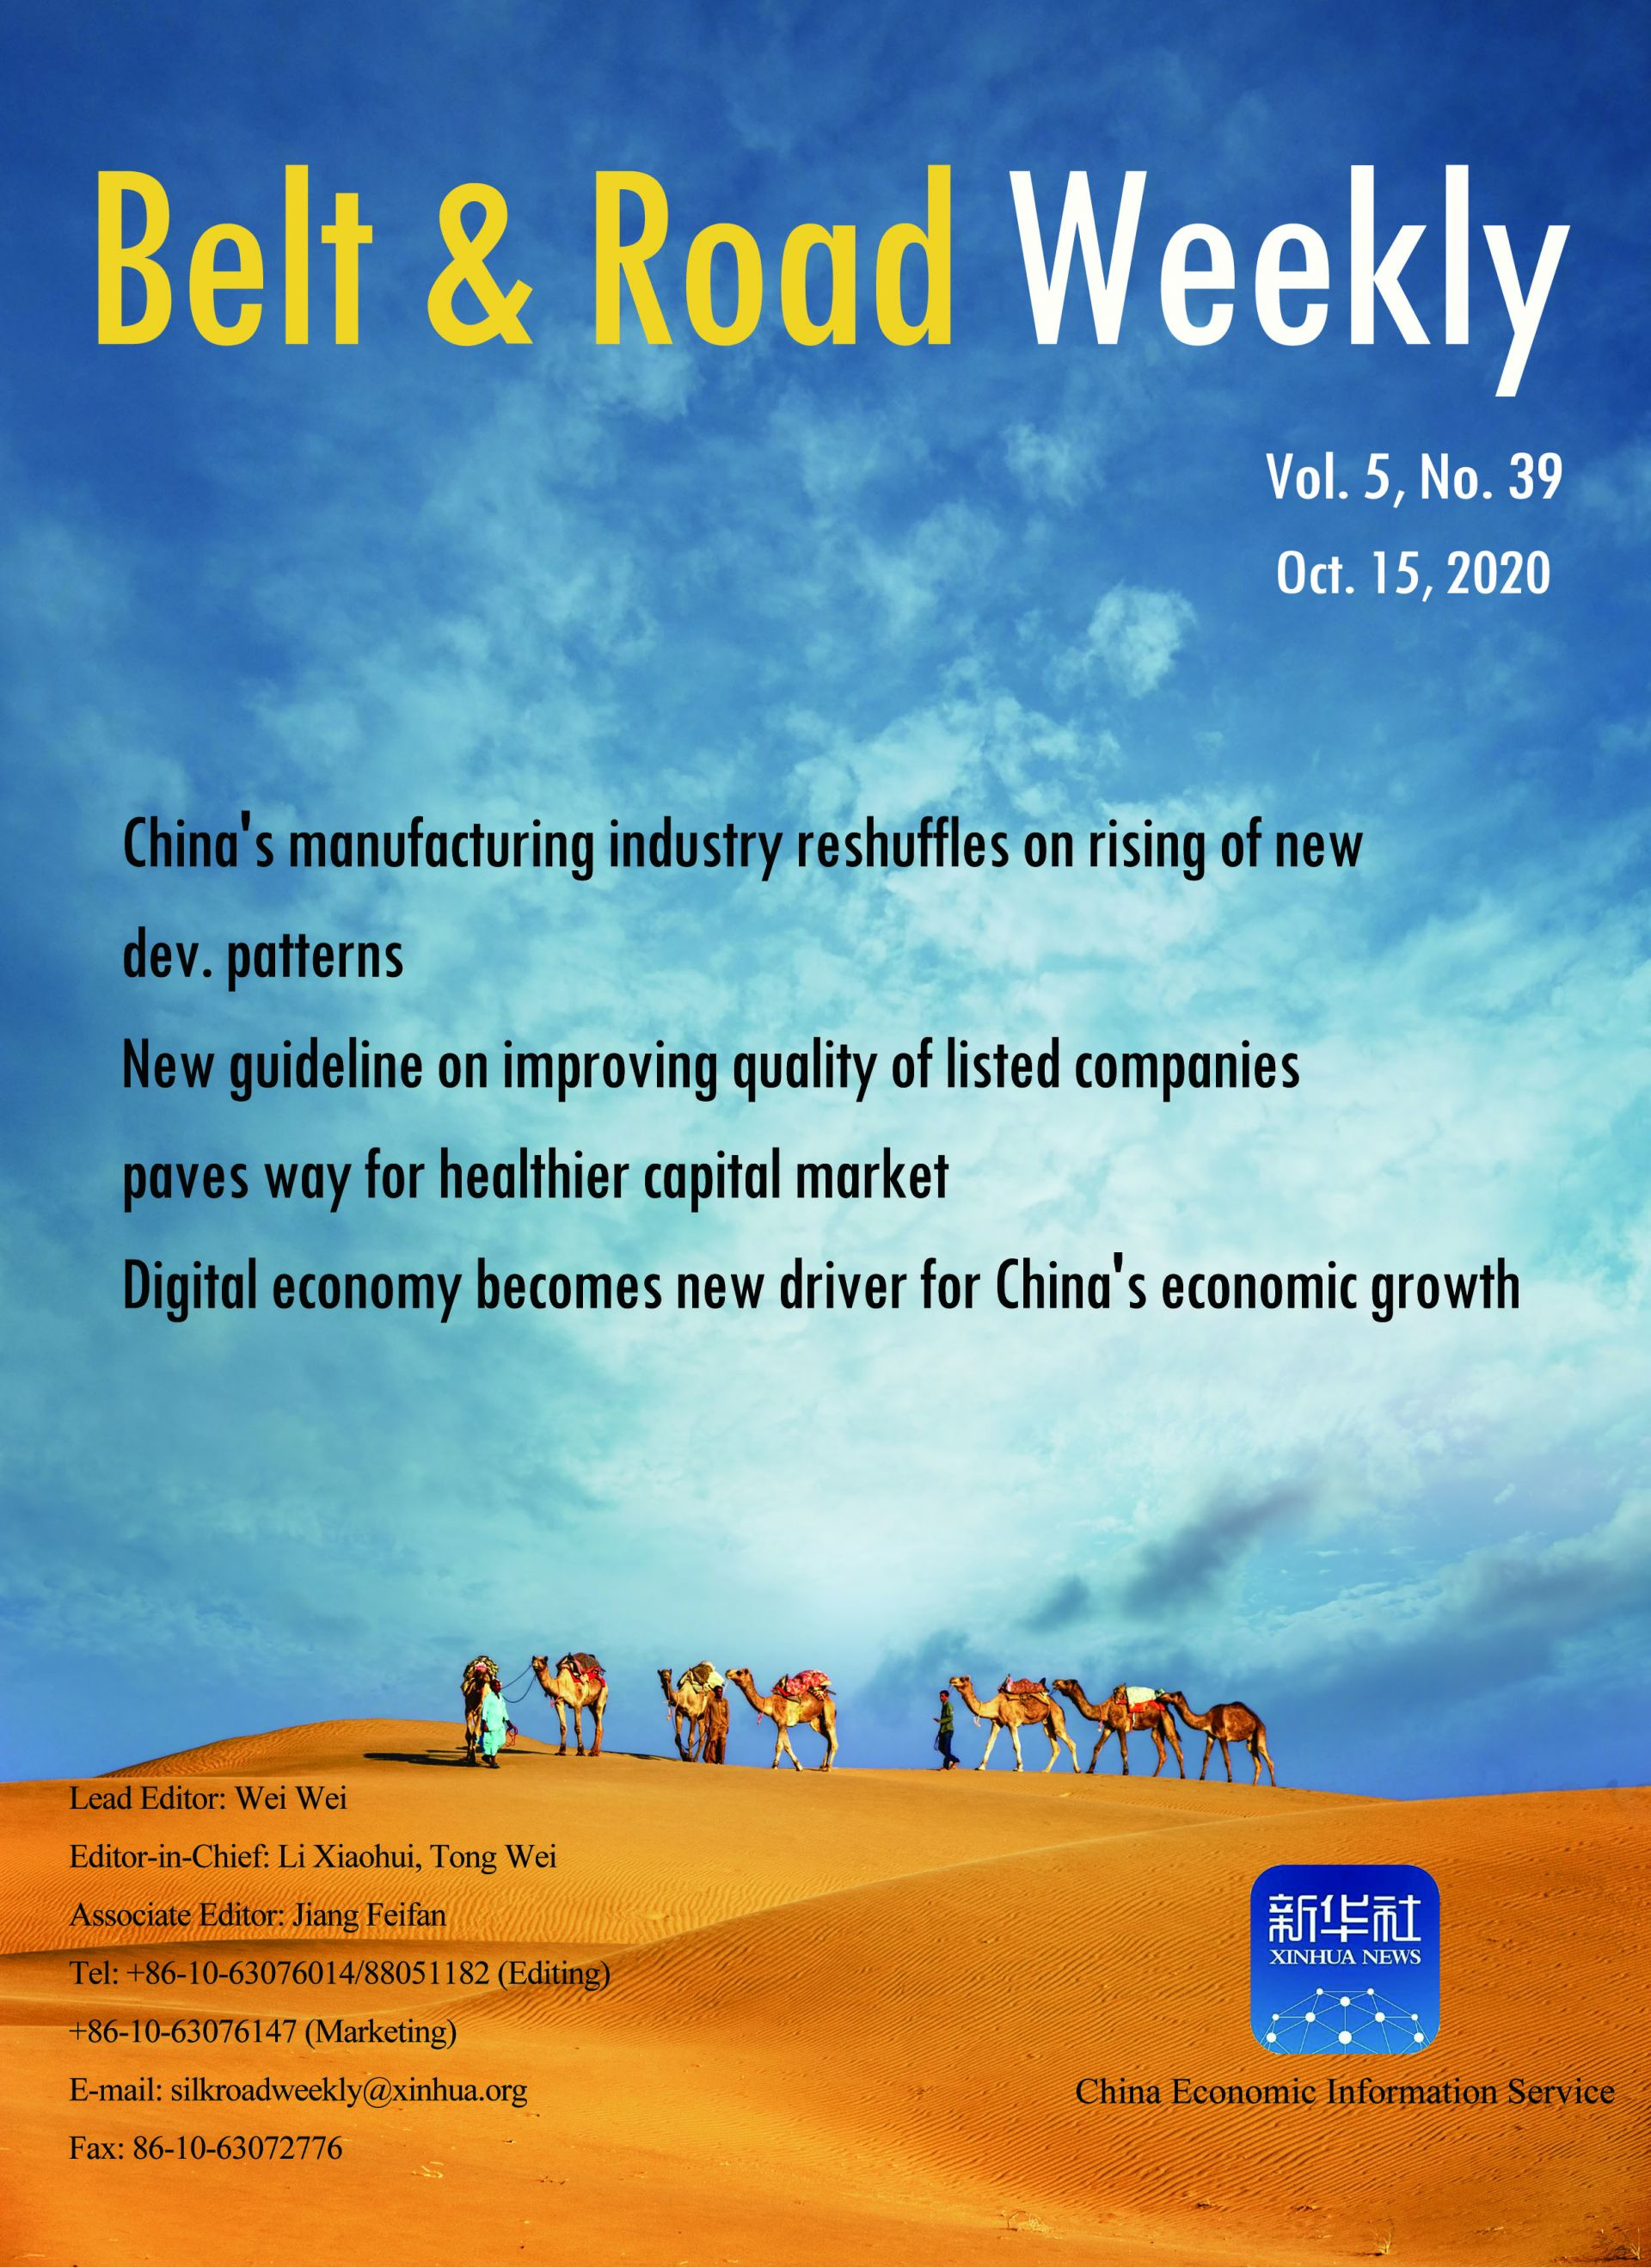 Belt and Road Weekly Vol. 5, No. 39